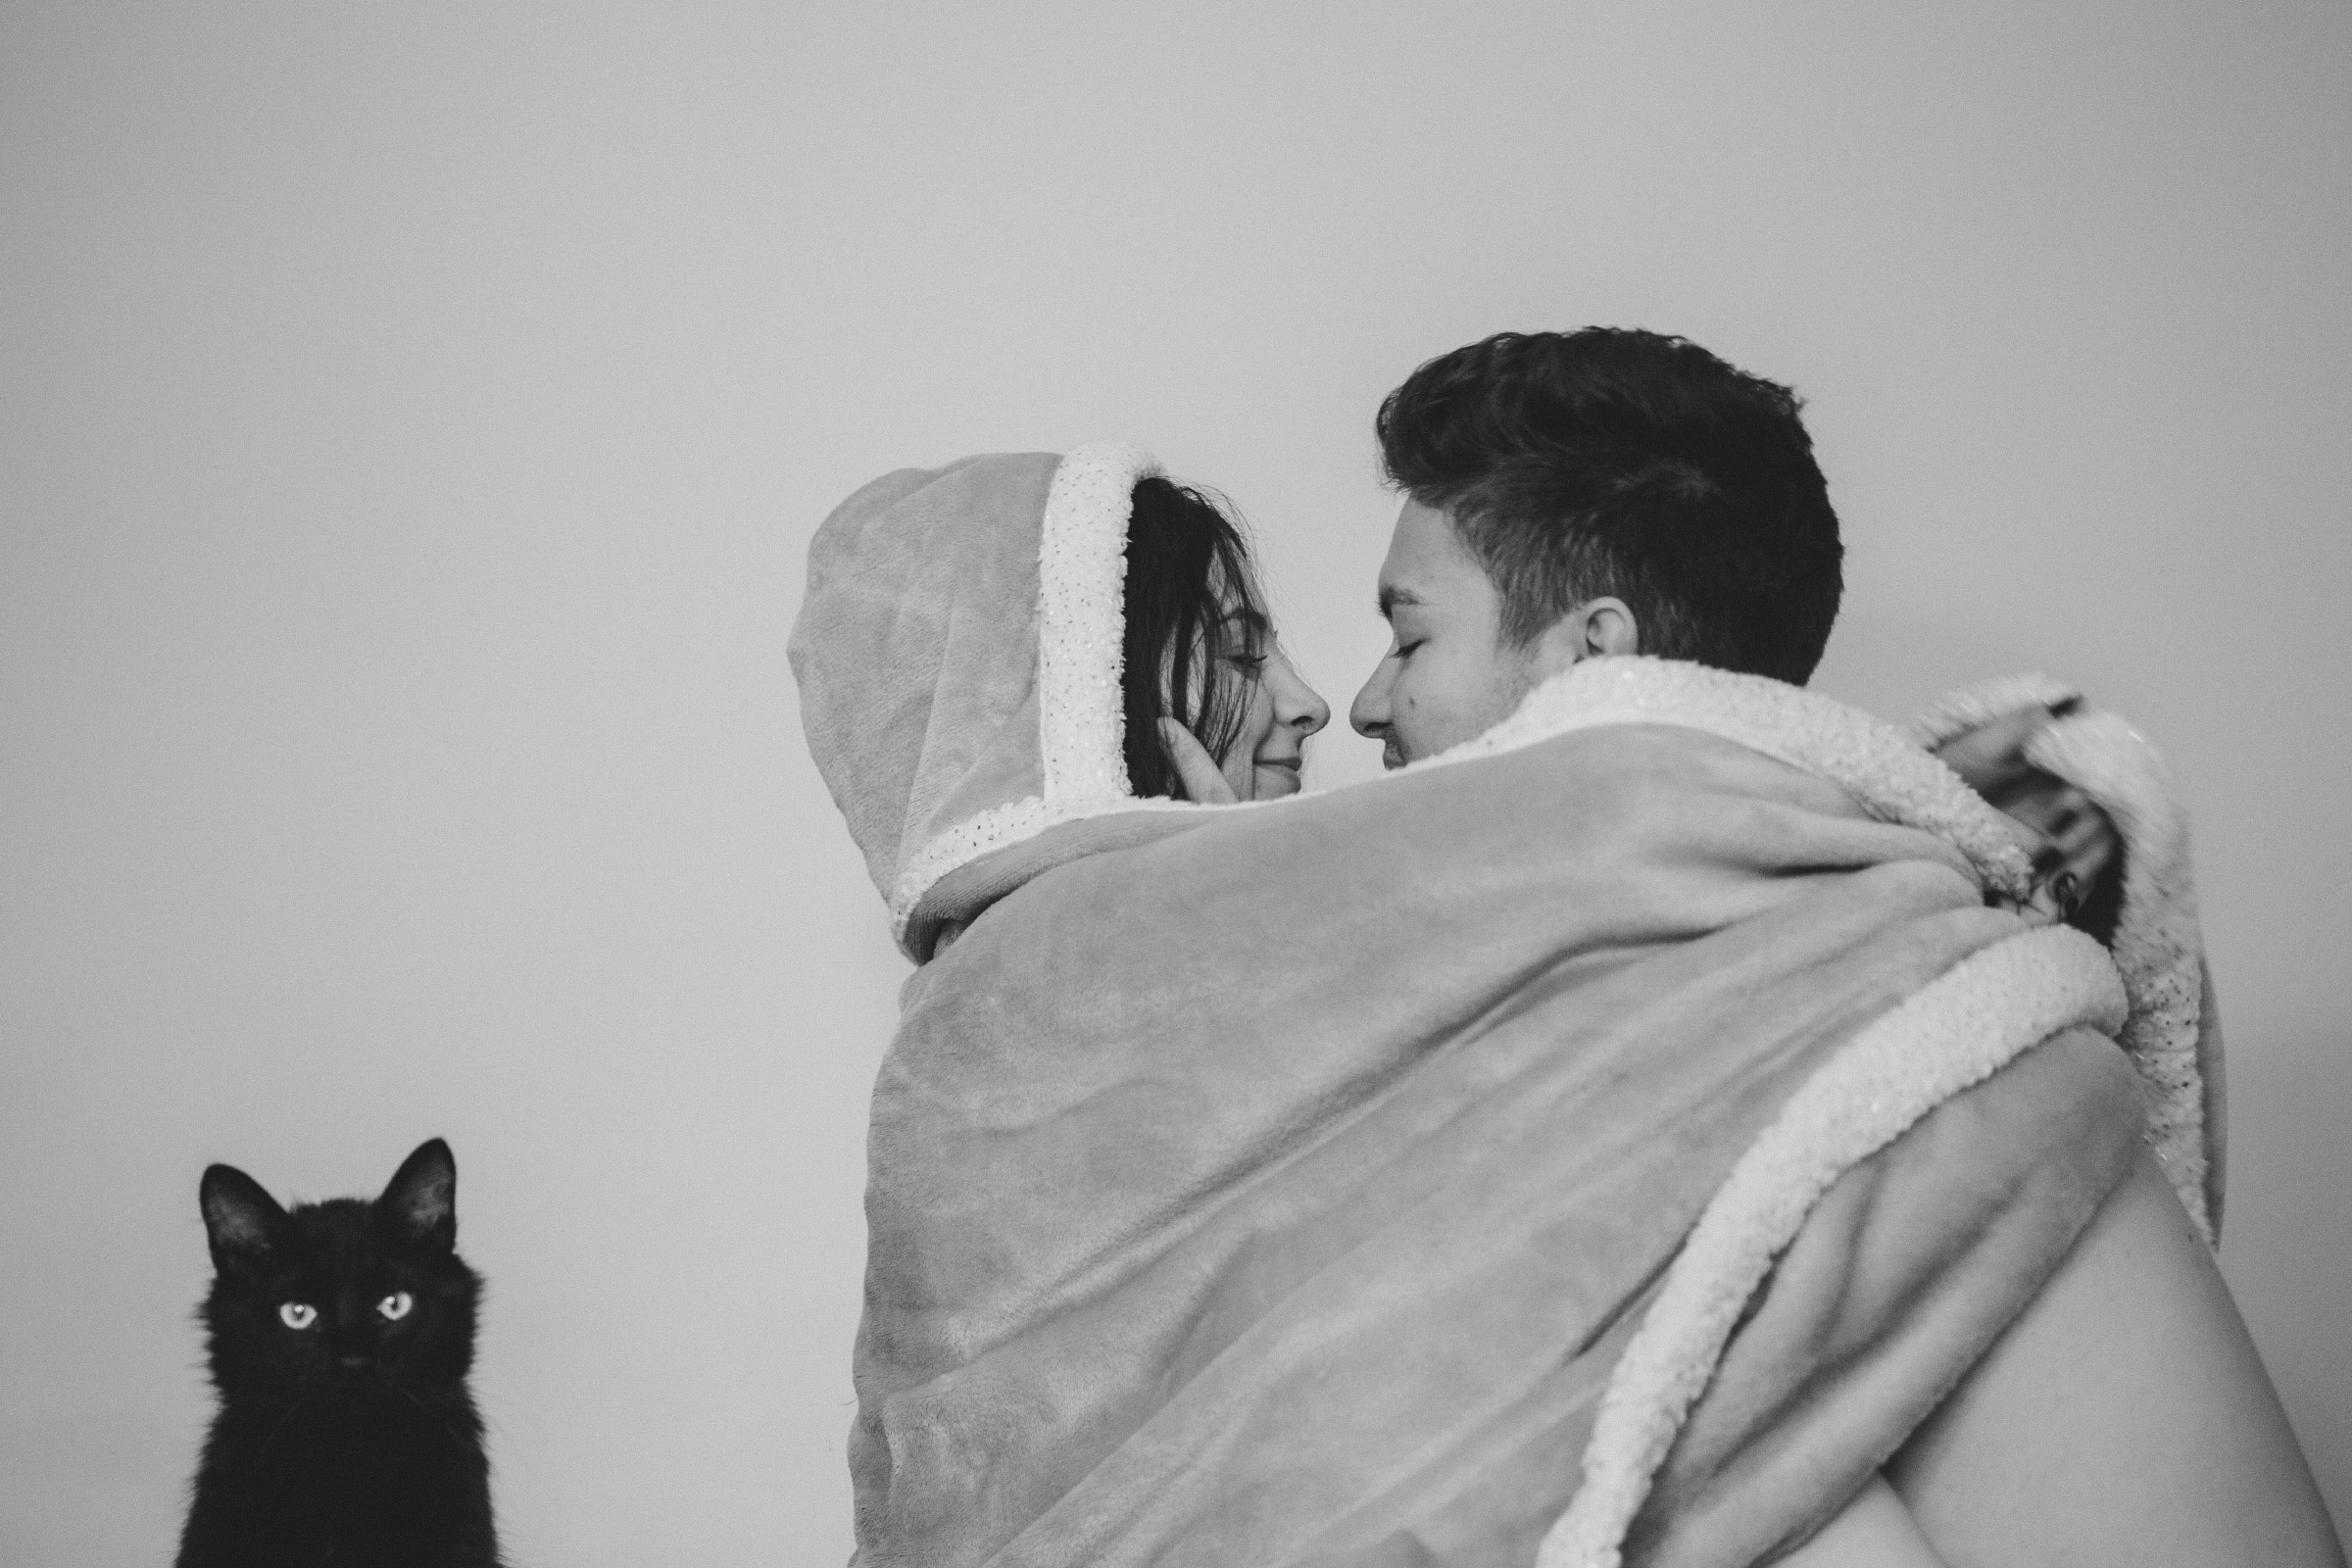 These lovers are Romanian students. I was trying to take romantic picture, but cat kept intruding into the frame. (Natalia Mindru/GroundTruth)